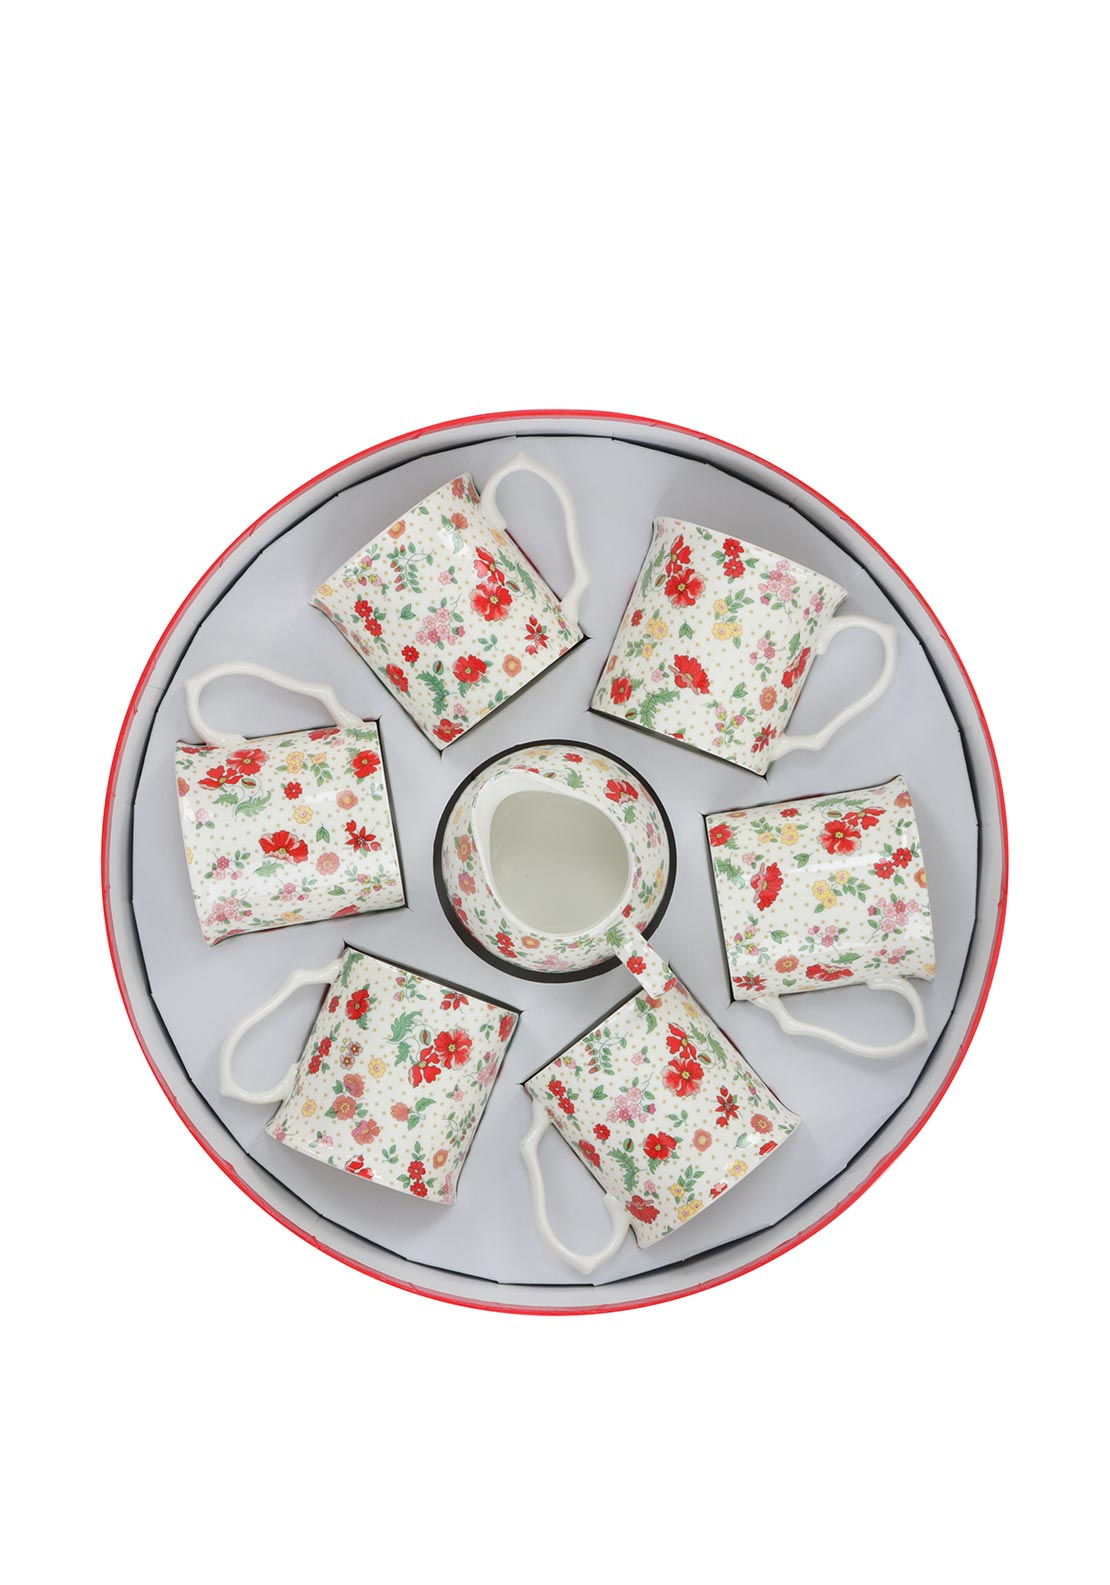 Shannonbridge Poppies 8 Piece Set, Multi-Coloured